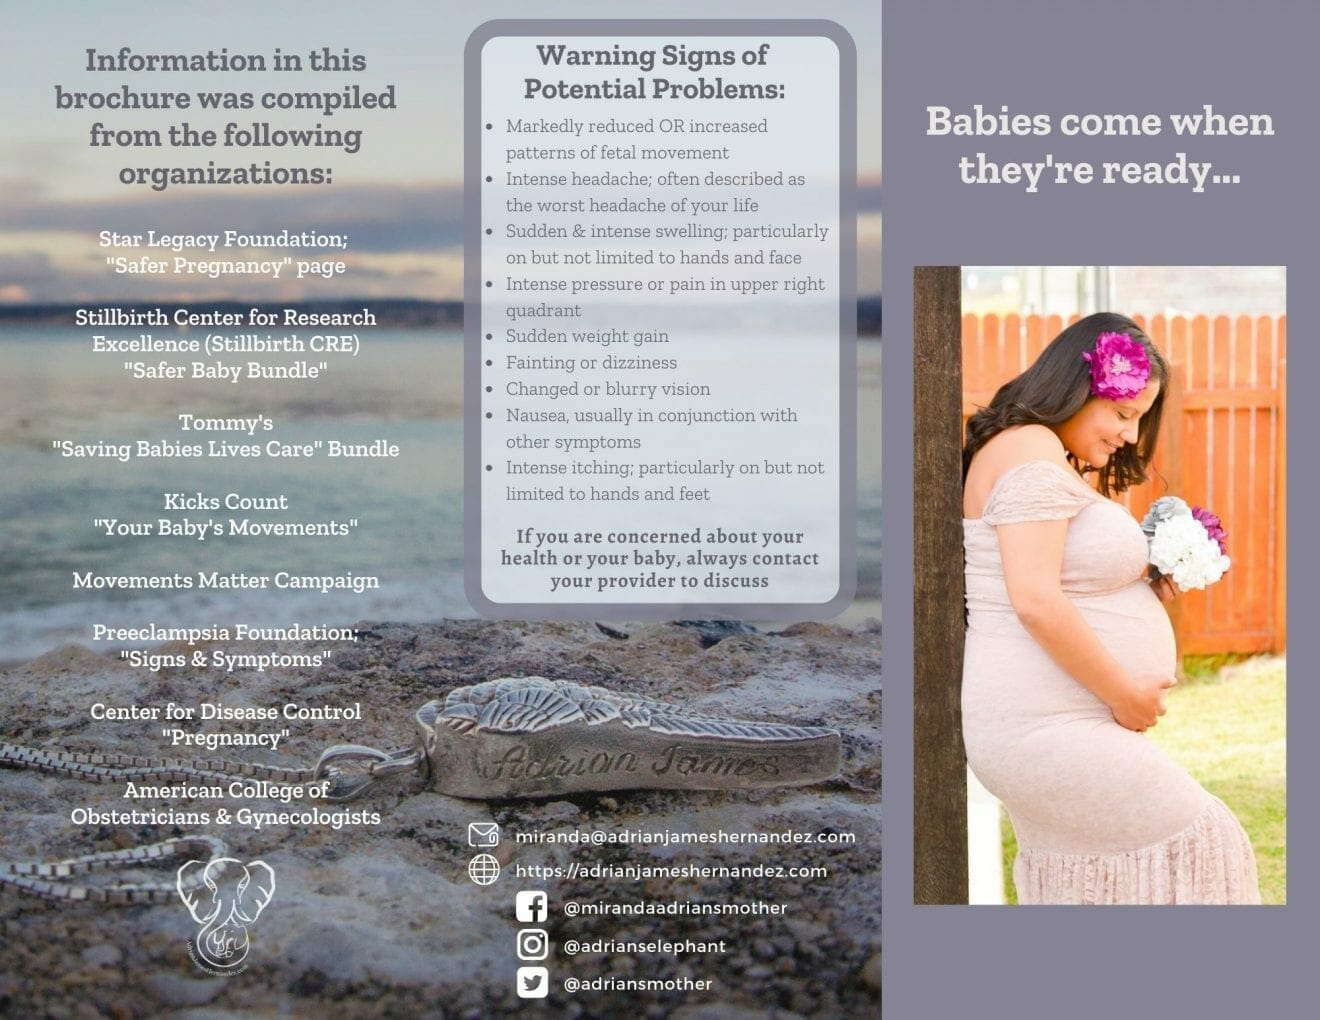 Informed Pregnancy Brochure describing my experience going overdue in pregnancy and outlining risks and warning signs of problems in pregnancy (side 1)